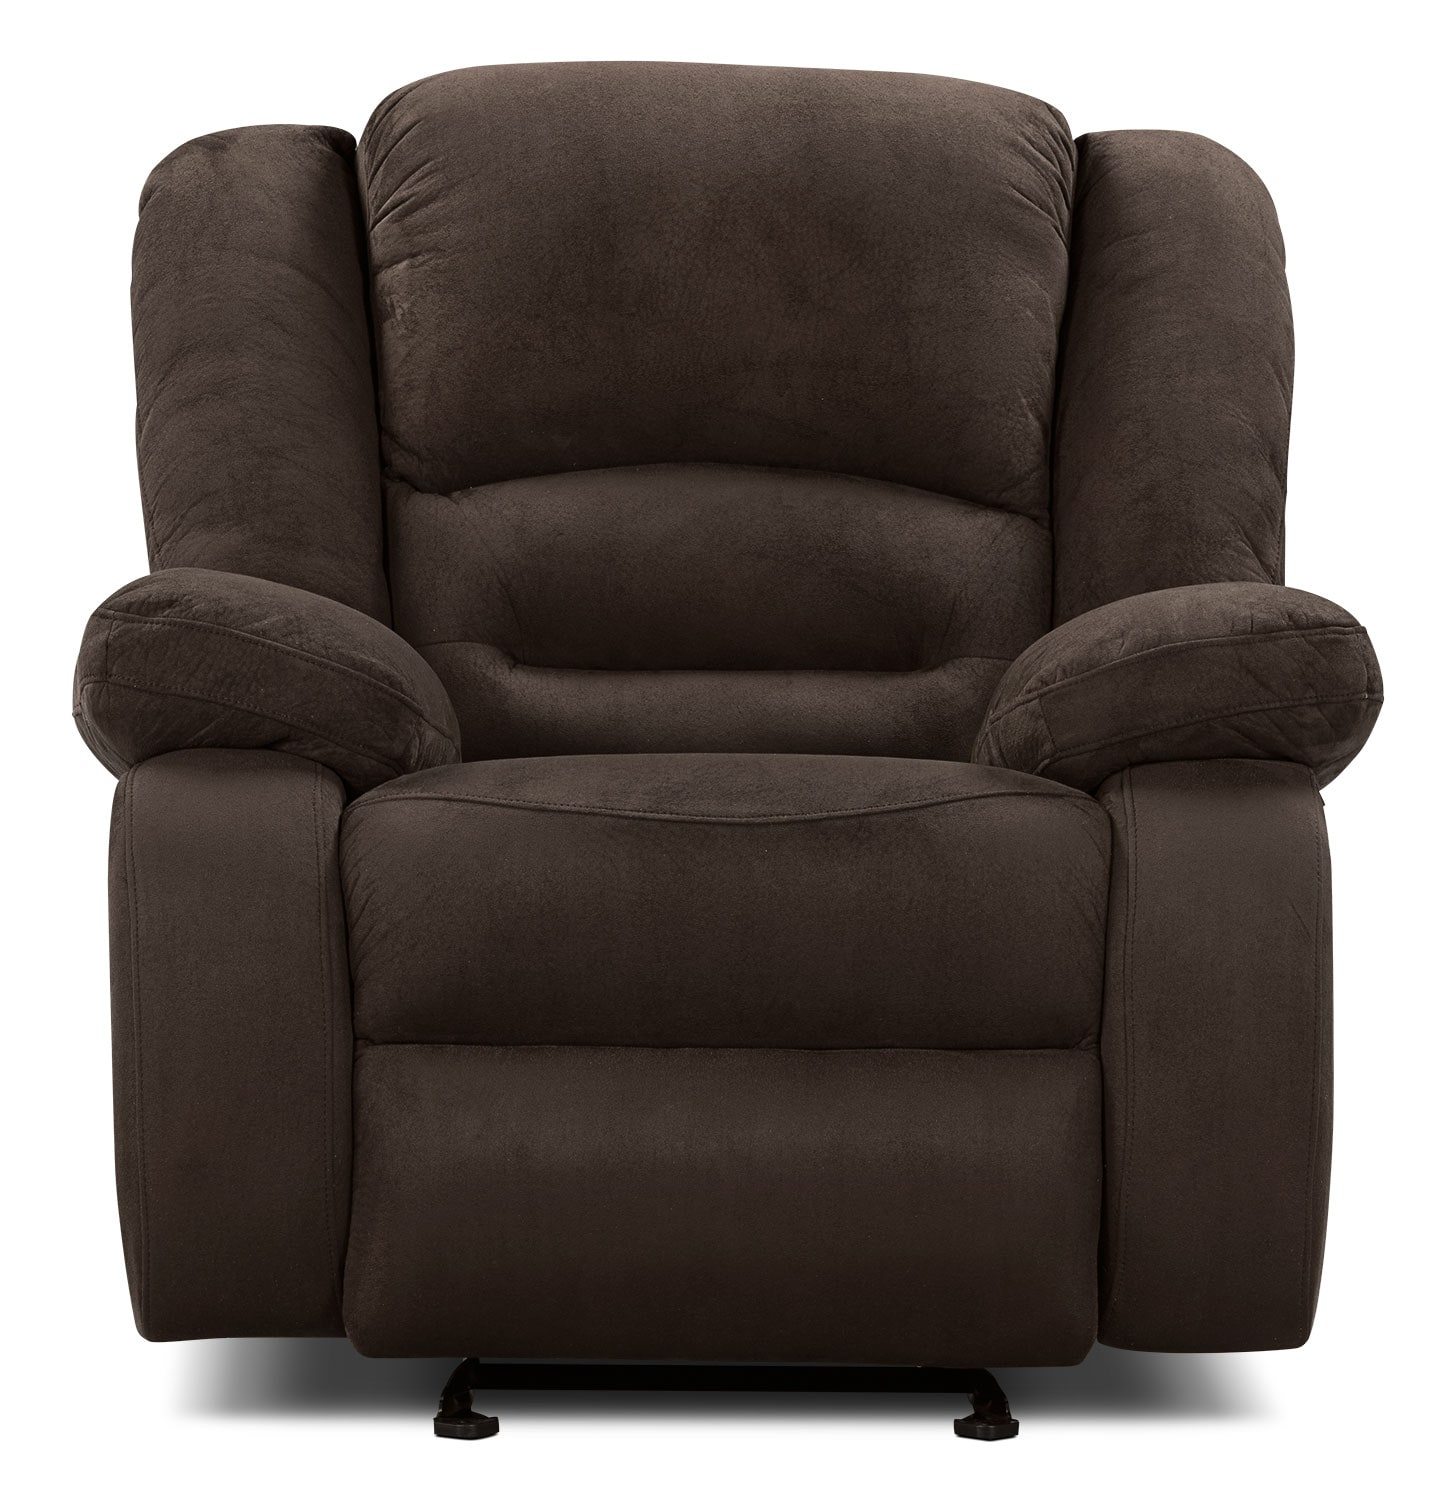 Living Room Furniture - Toreno Cocoa Padded Microsuede Reclining Glider Chair